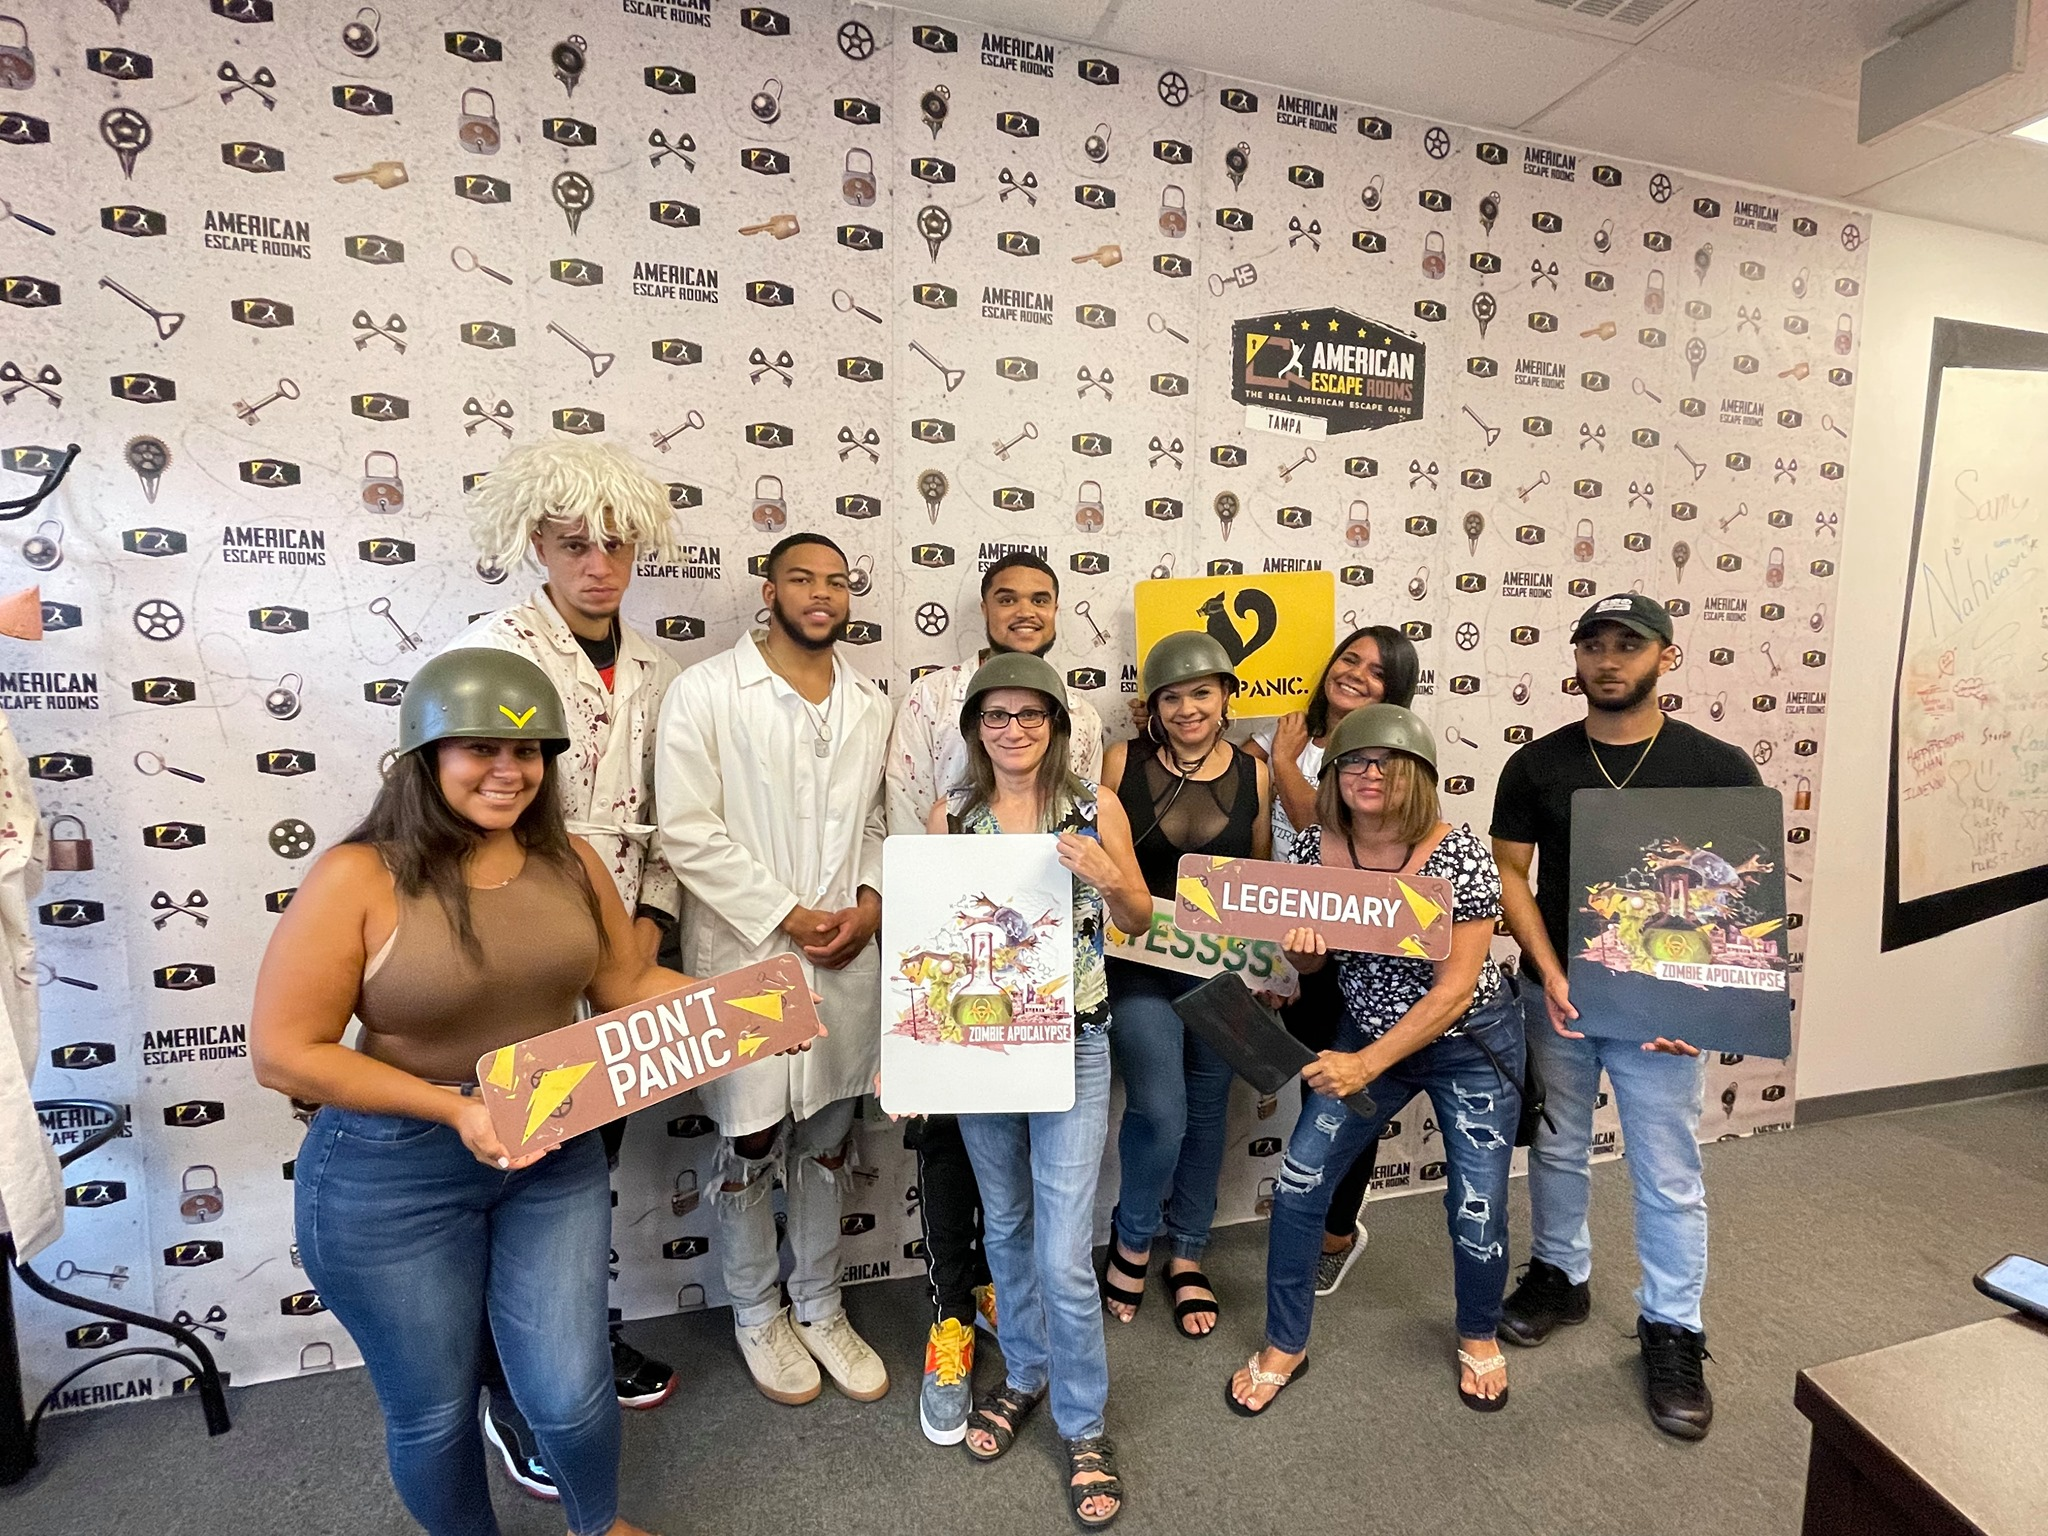 Team Rosa played the Zombie Apocalypse - Tampa and finished the game with 10 minutes 35 seconds left. Congratulations! Well done!